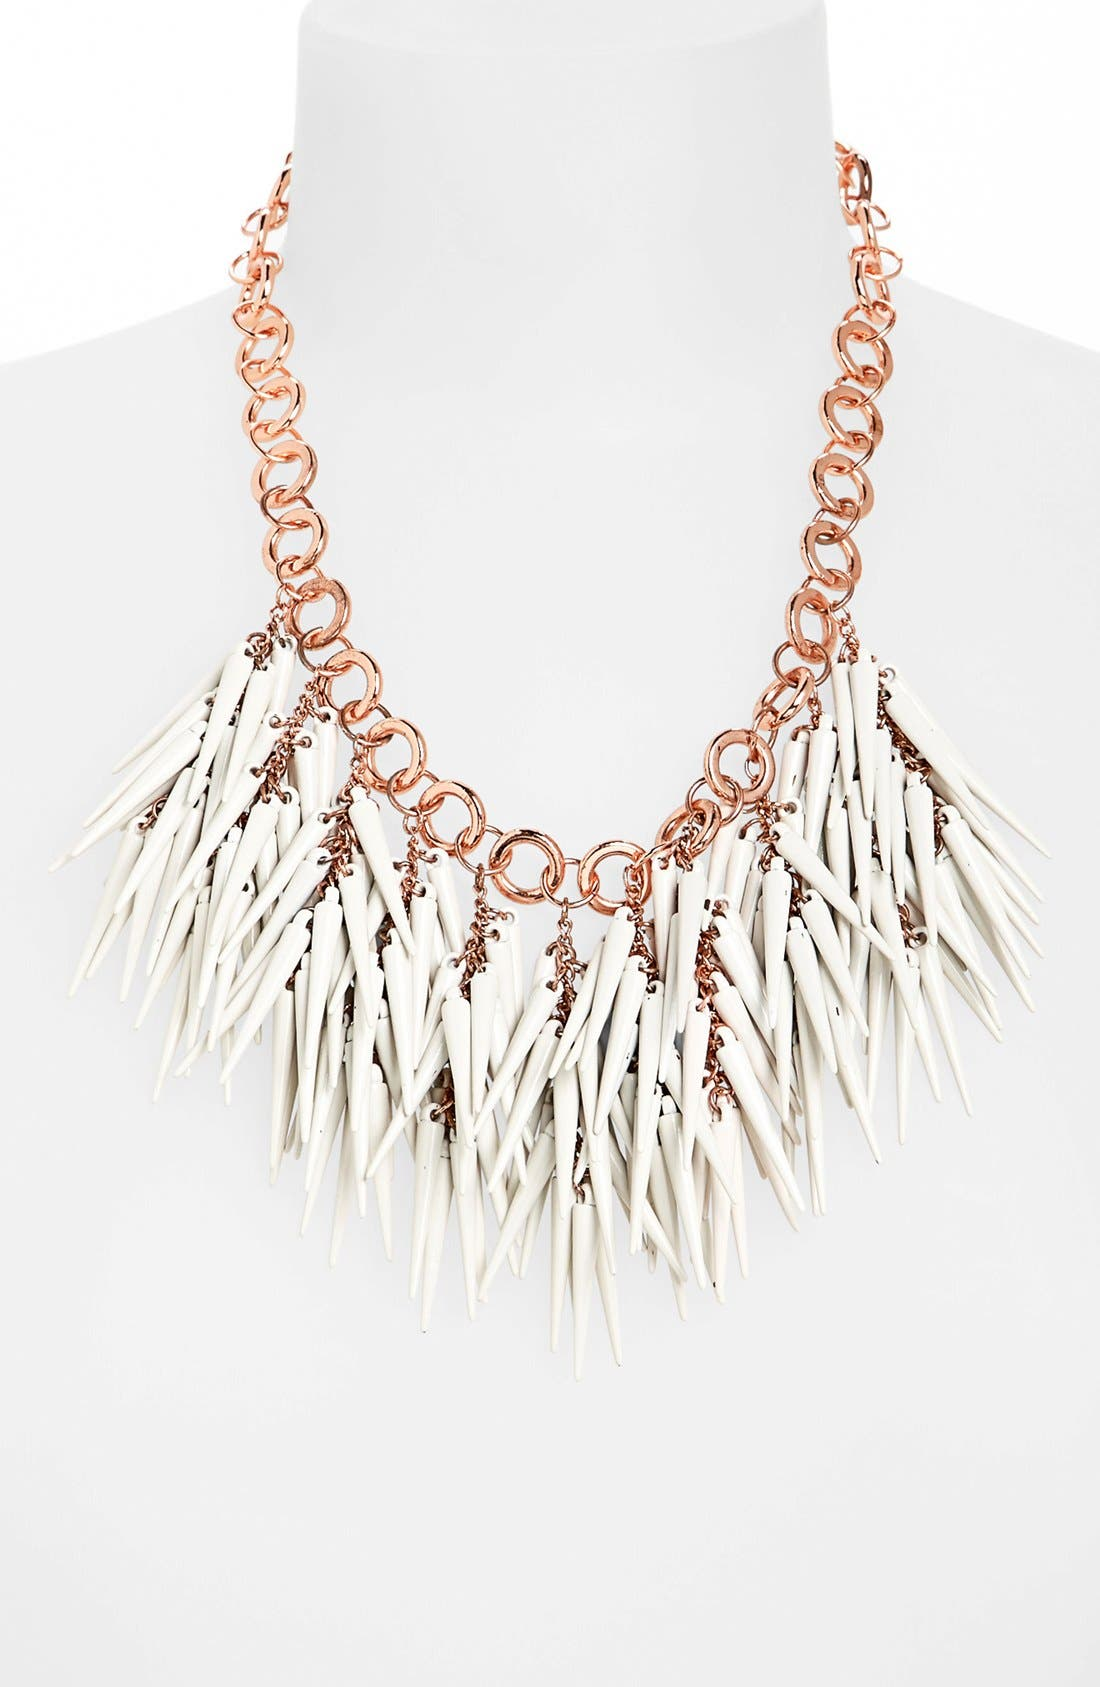 Alternate Image 1 Selected - 8 Other Reasons 'One Shot Only' Spike Necklace